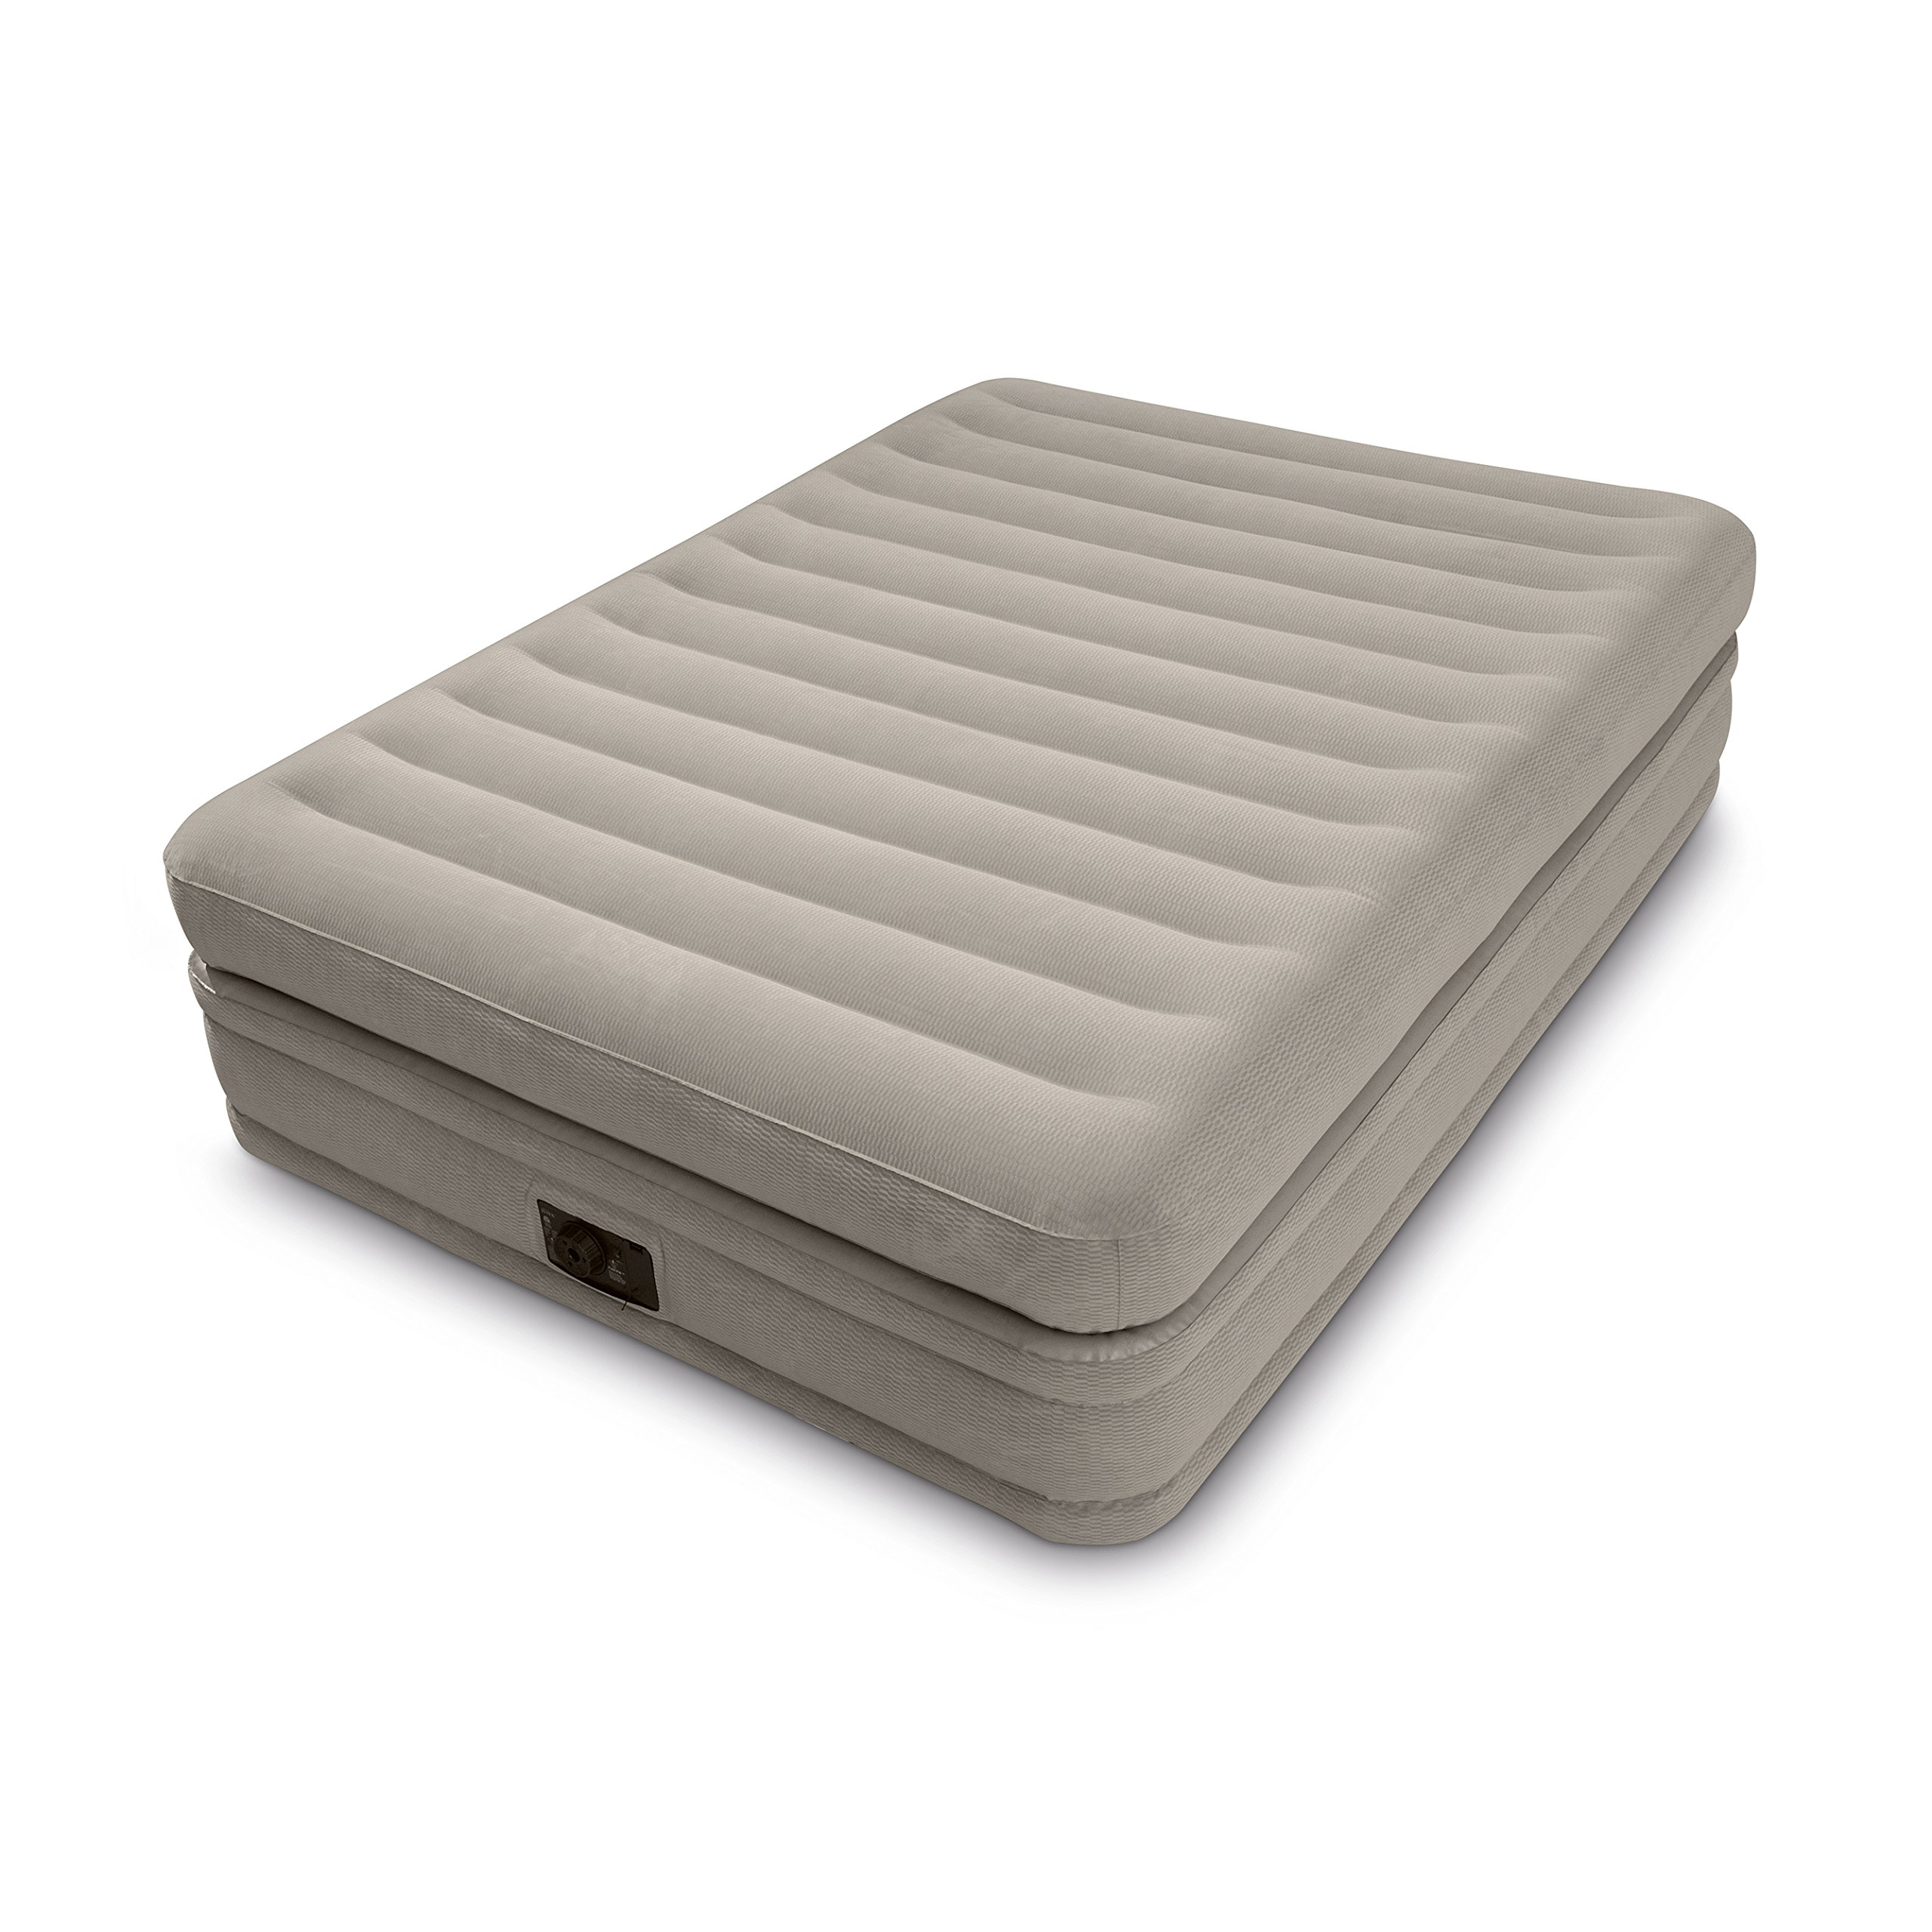 Intex Inflatable Prime Comfort Elevated Queen Airbed with Built-in Pump | 64445E